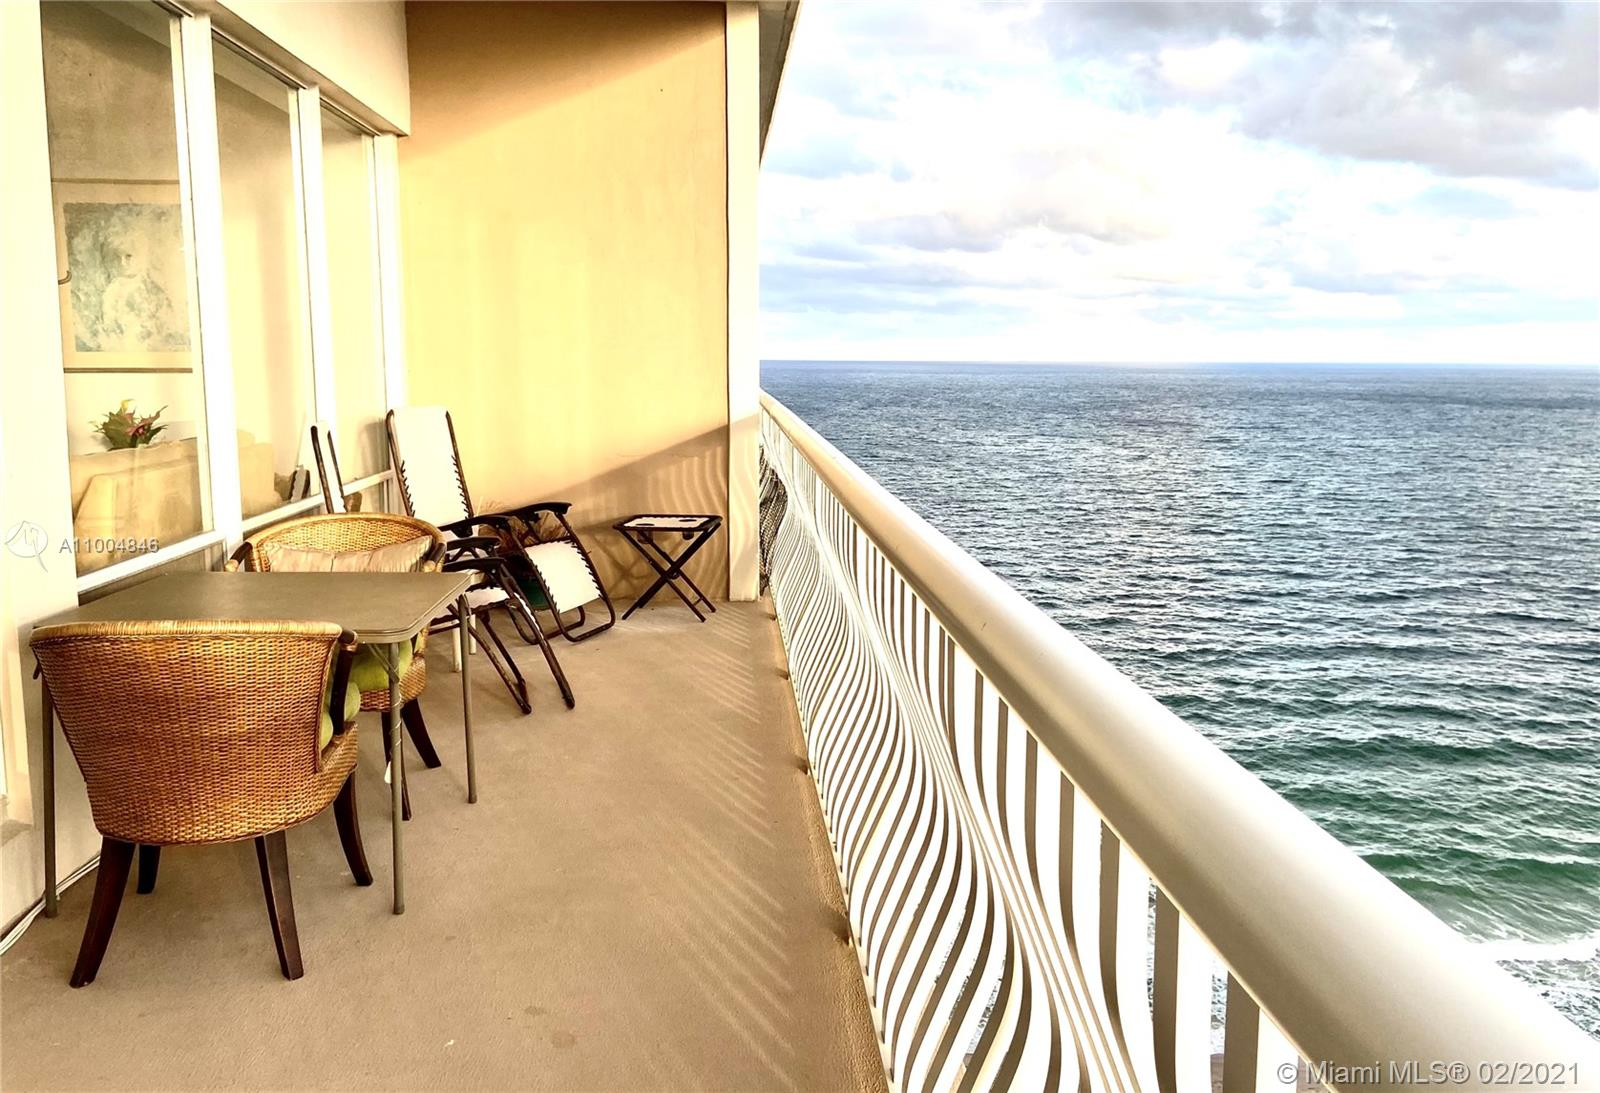 RARE OPPORTUNITY - LARGE OCEAN FRONT PENTHOUSE - FULLY RENOVATED - OPEN KITCHEN - PANORAMIC OCEAN AND CITY VIEWS - 2 BR/2 BA CONV 3 BR - FULL AMENITY BUILDING - Come live on private beachfront in Fort Lauderdale's best kept secret, the Galt neighborhood. Unit boasts high ceilings, polished tile throughout, entertainers kitchen with butlers area. Oversized master bedroom with office/sitting area, en suite bathroom with double shower, walk in closets. Oversized second bedroom with walk-in closets. Rare Washer/Dryer in unit. Building amenities include a Rooftop Pool, Gym, Tennis Court, Ocean Front Patio BBQ Area, Bocce Ball, Library, Card Room, Party Room, Bar/Lounge Area, Art/Dance Studio, Adult Game Room, Youth Game Room, Women's Lounge and Men's Lounge. Lobby attended 24/7 with security.